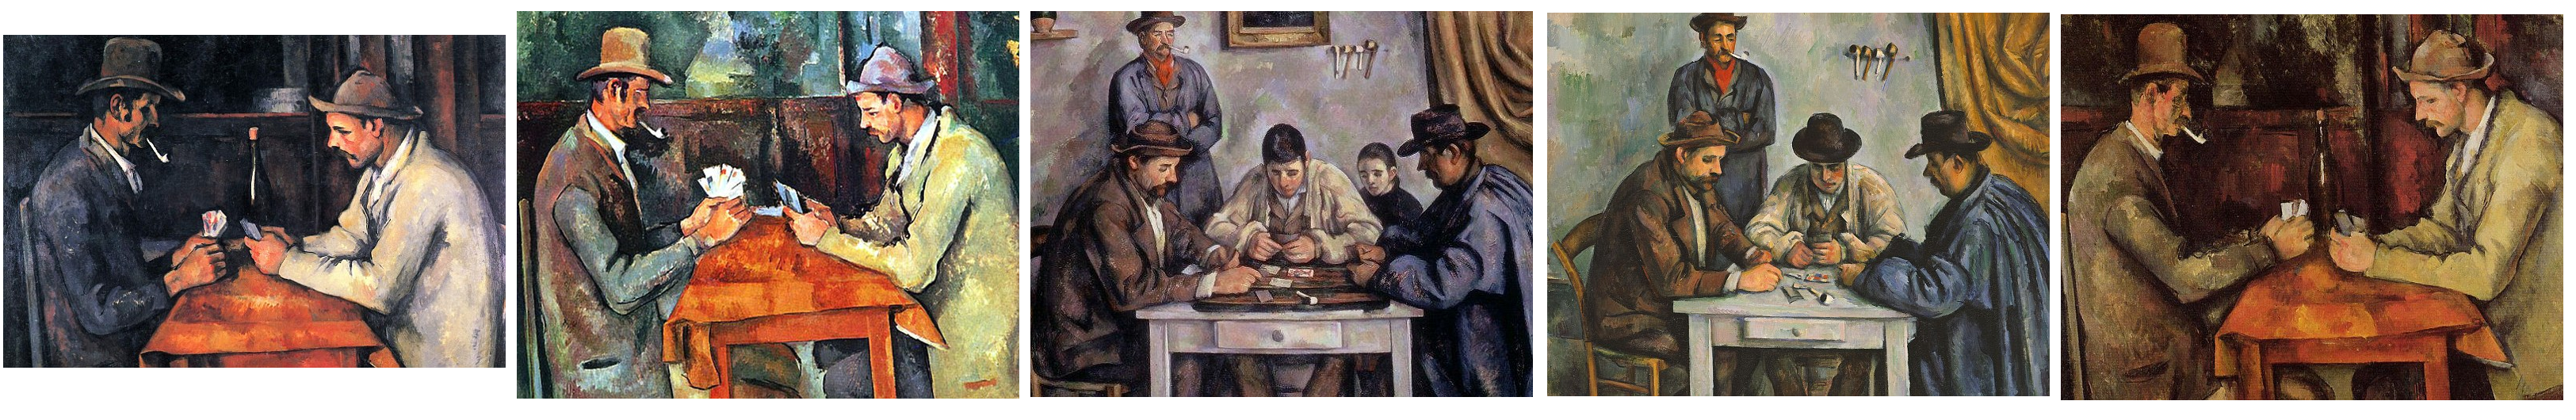 The 5 Card Players - The Most Expensive Painting in the world